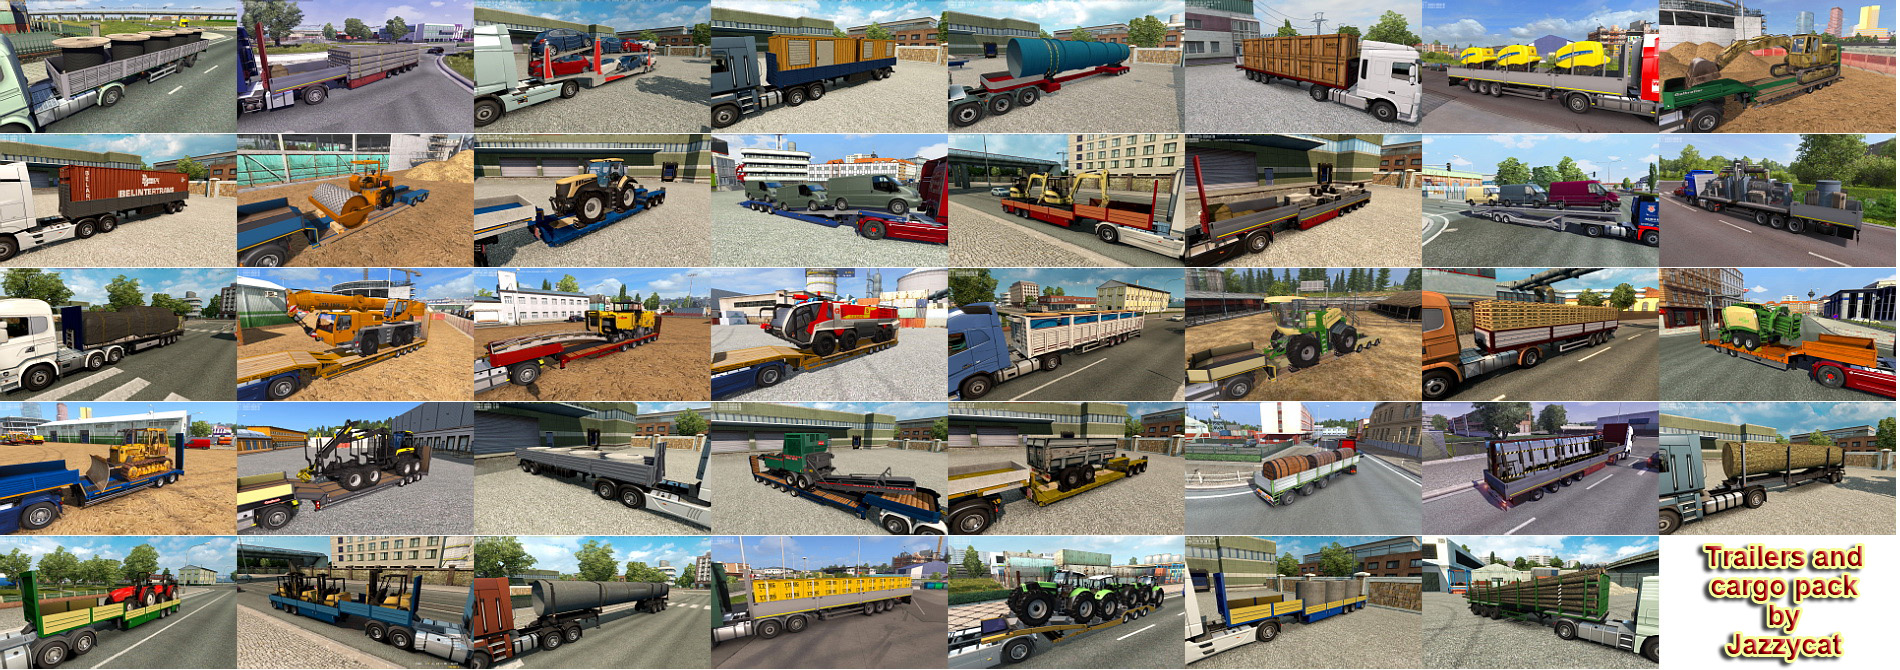 Trailers and Cargo Pack v7.0